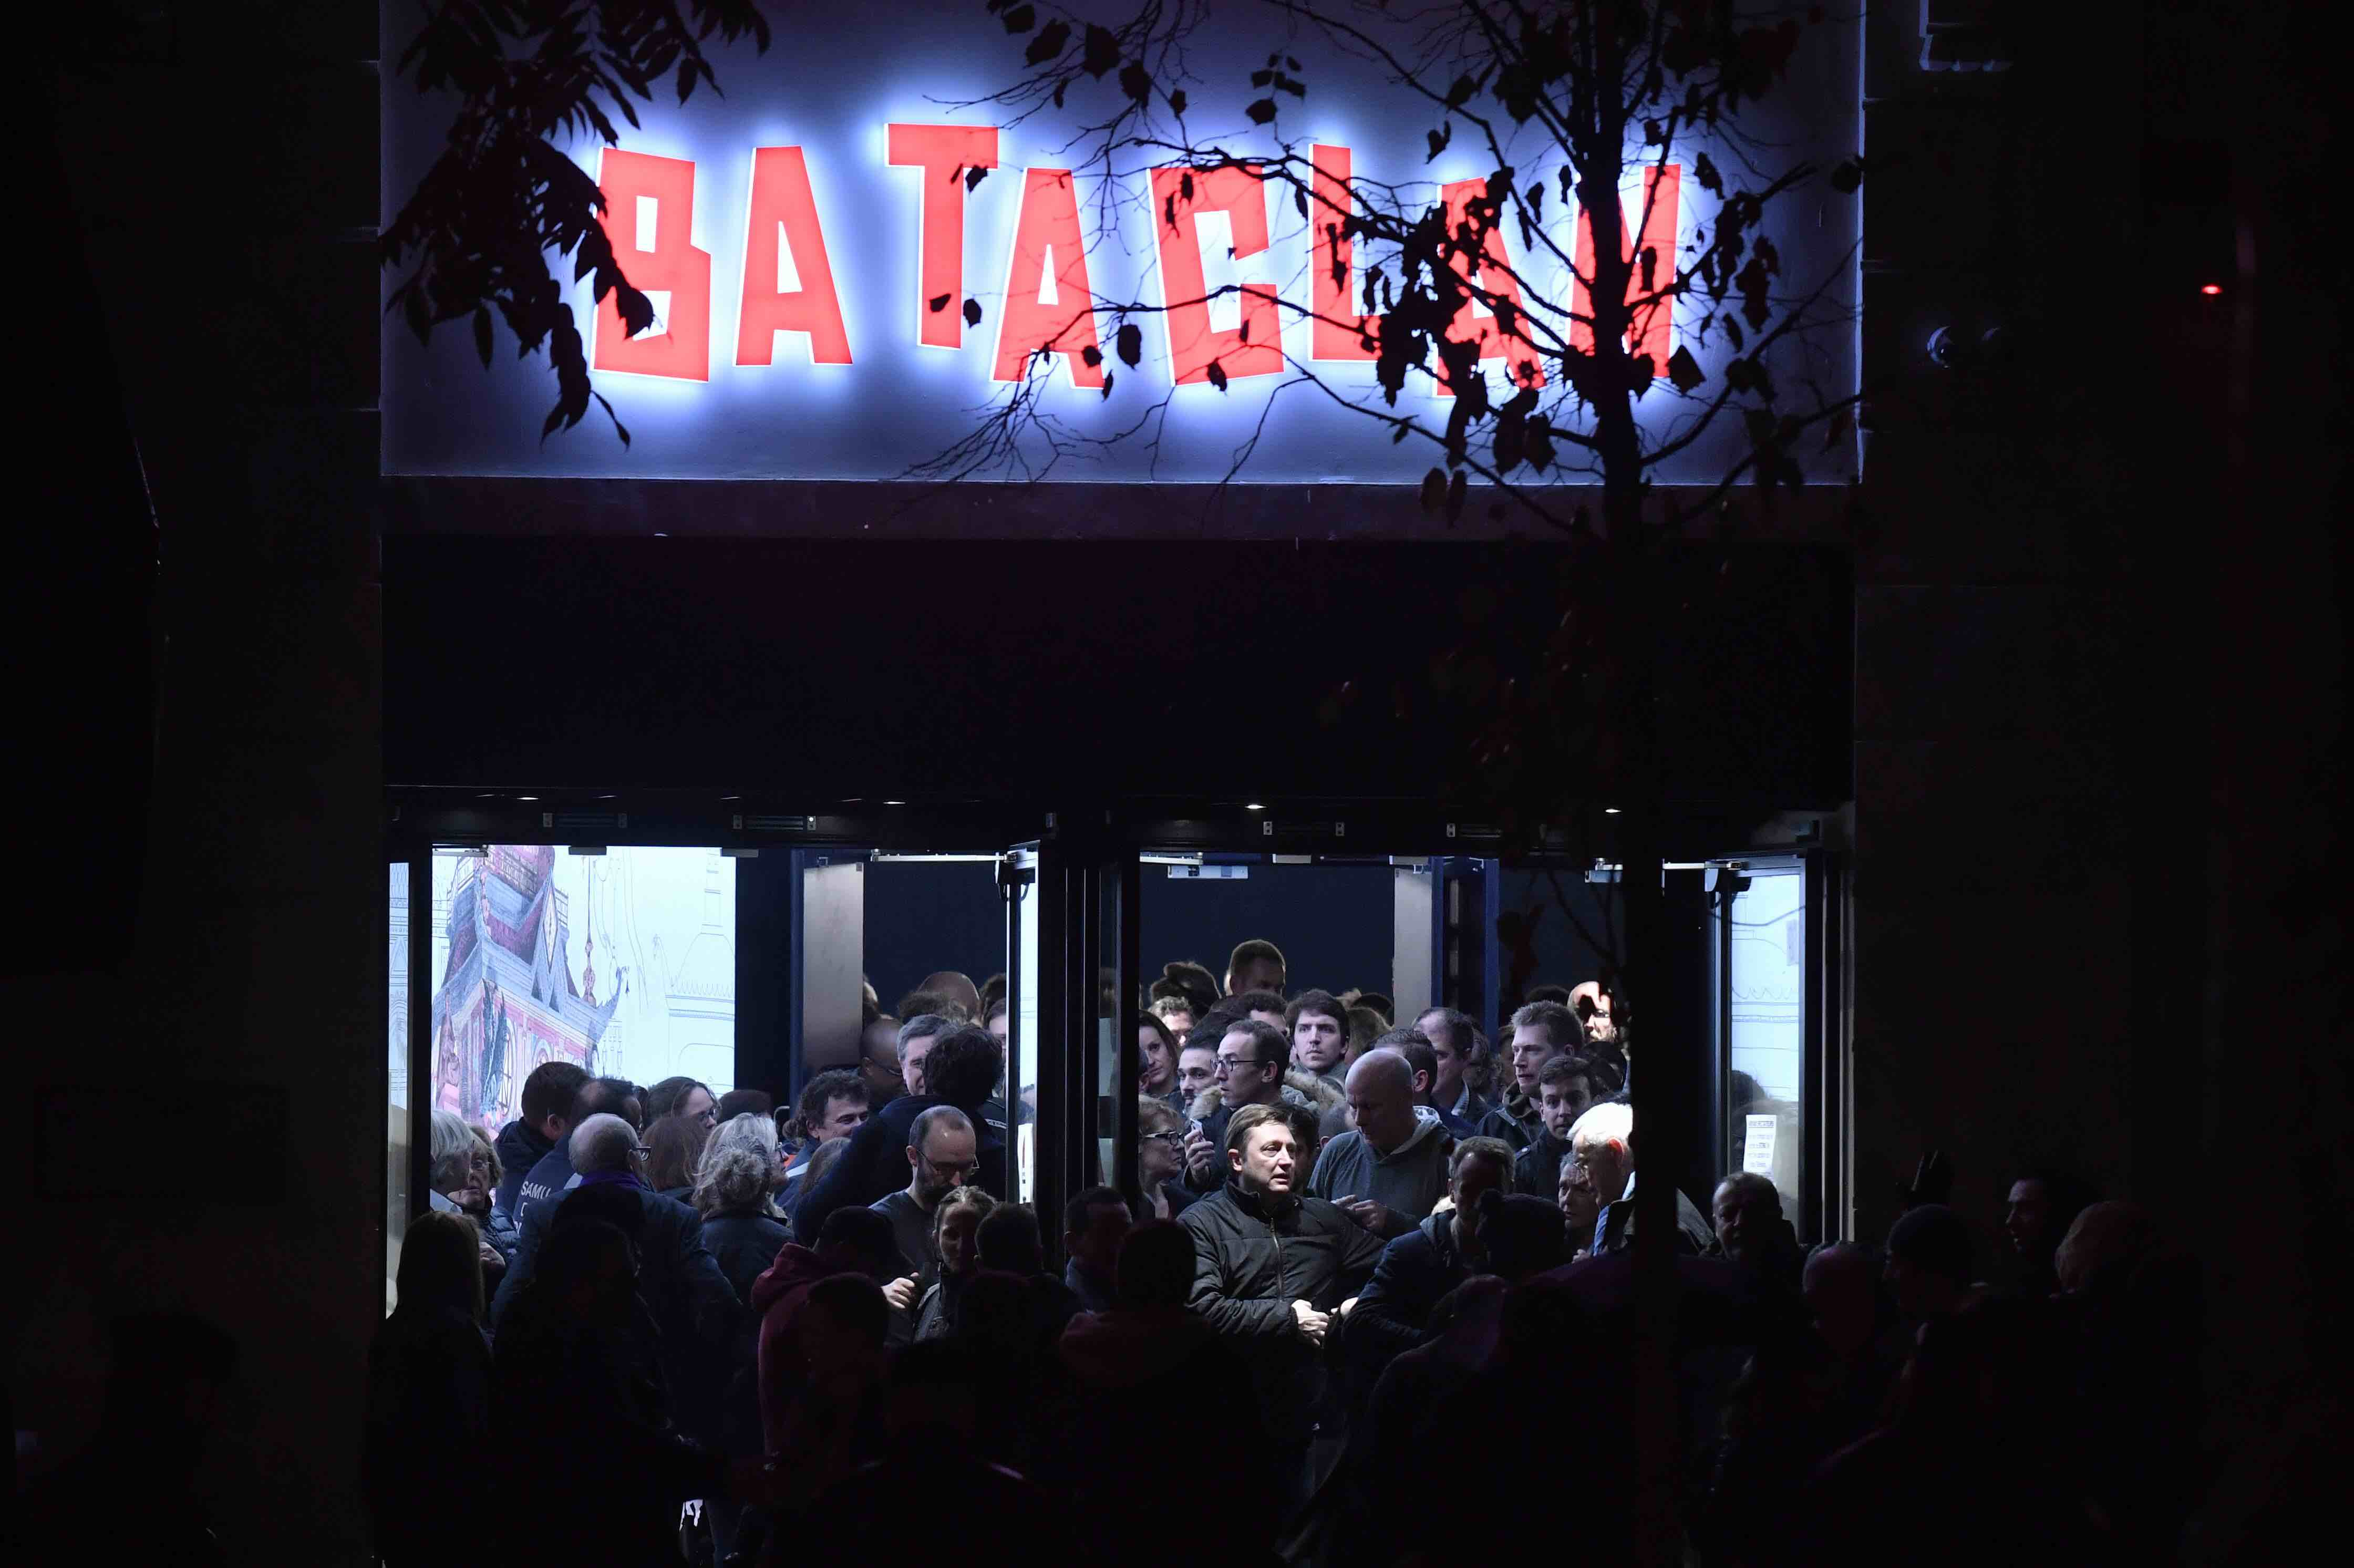 People leave the Bataclan concert hall in Paris on November 12, 2016, after the reopening concert by British musician Sting t